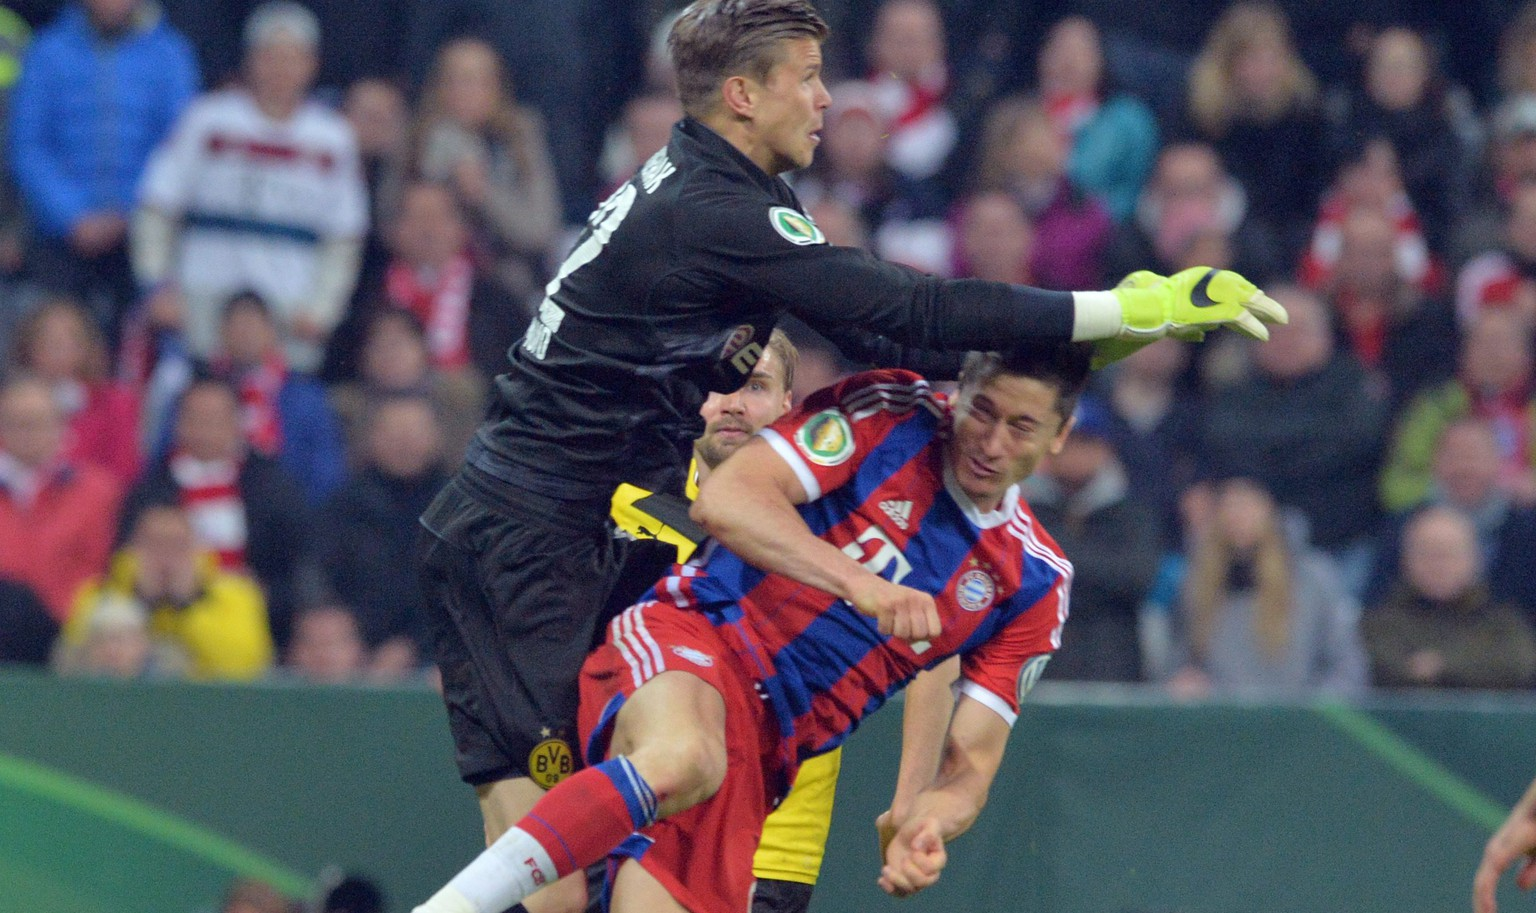 epa04724770 Robert Lewandowski (r) of Munich and goalkeeper Mitchell Langerak (l) of Dortmund during the German DFB Cup semi final match between FC Bayern Munich vs Borussia Dortmung in Munich, Germany, 28 April 2015.